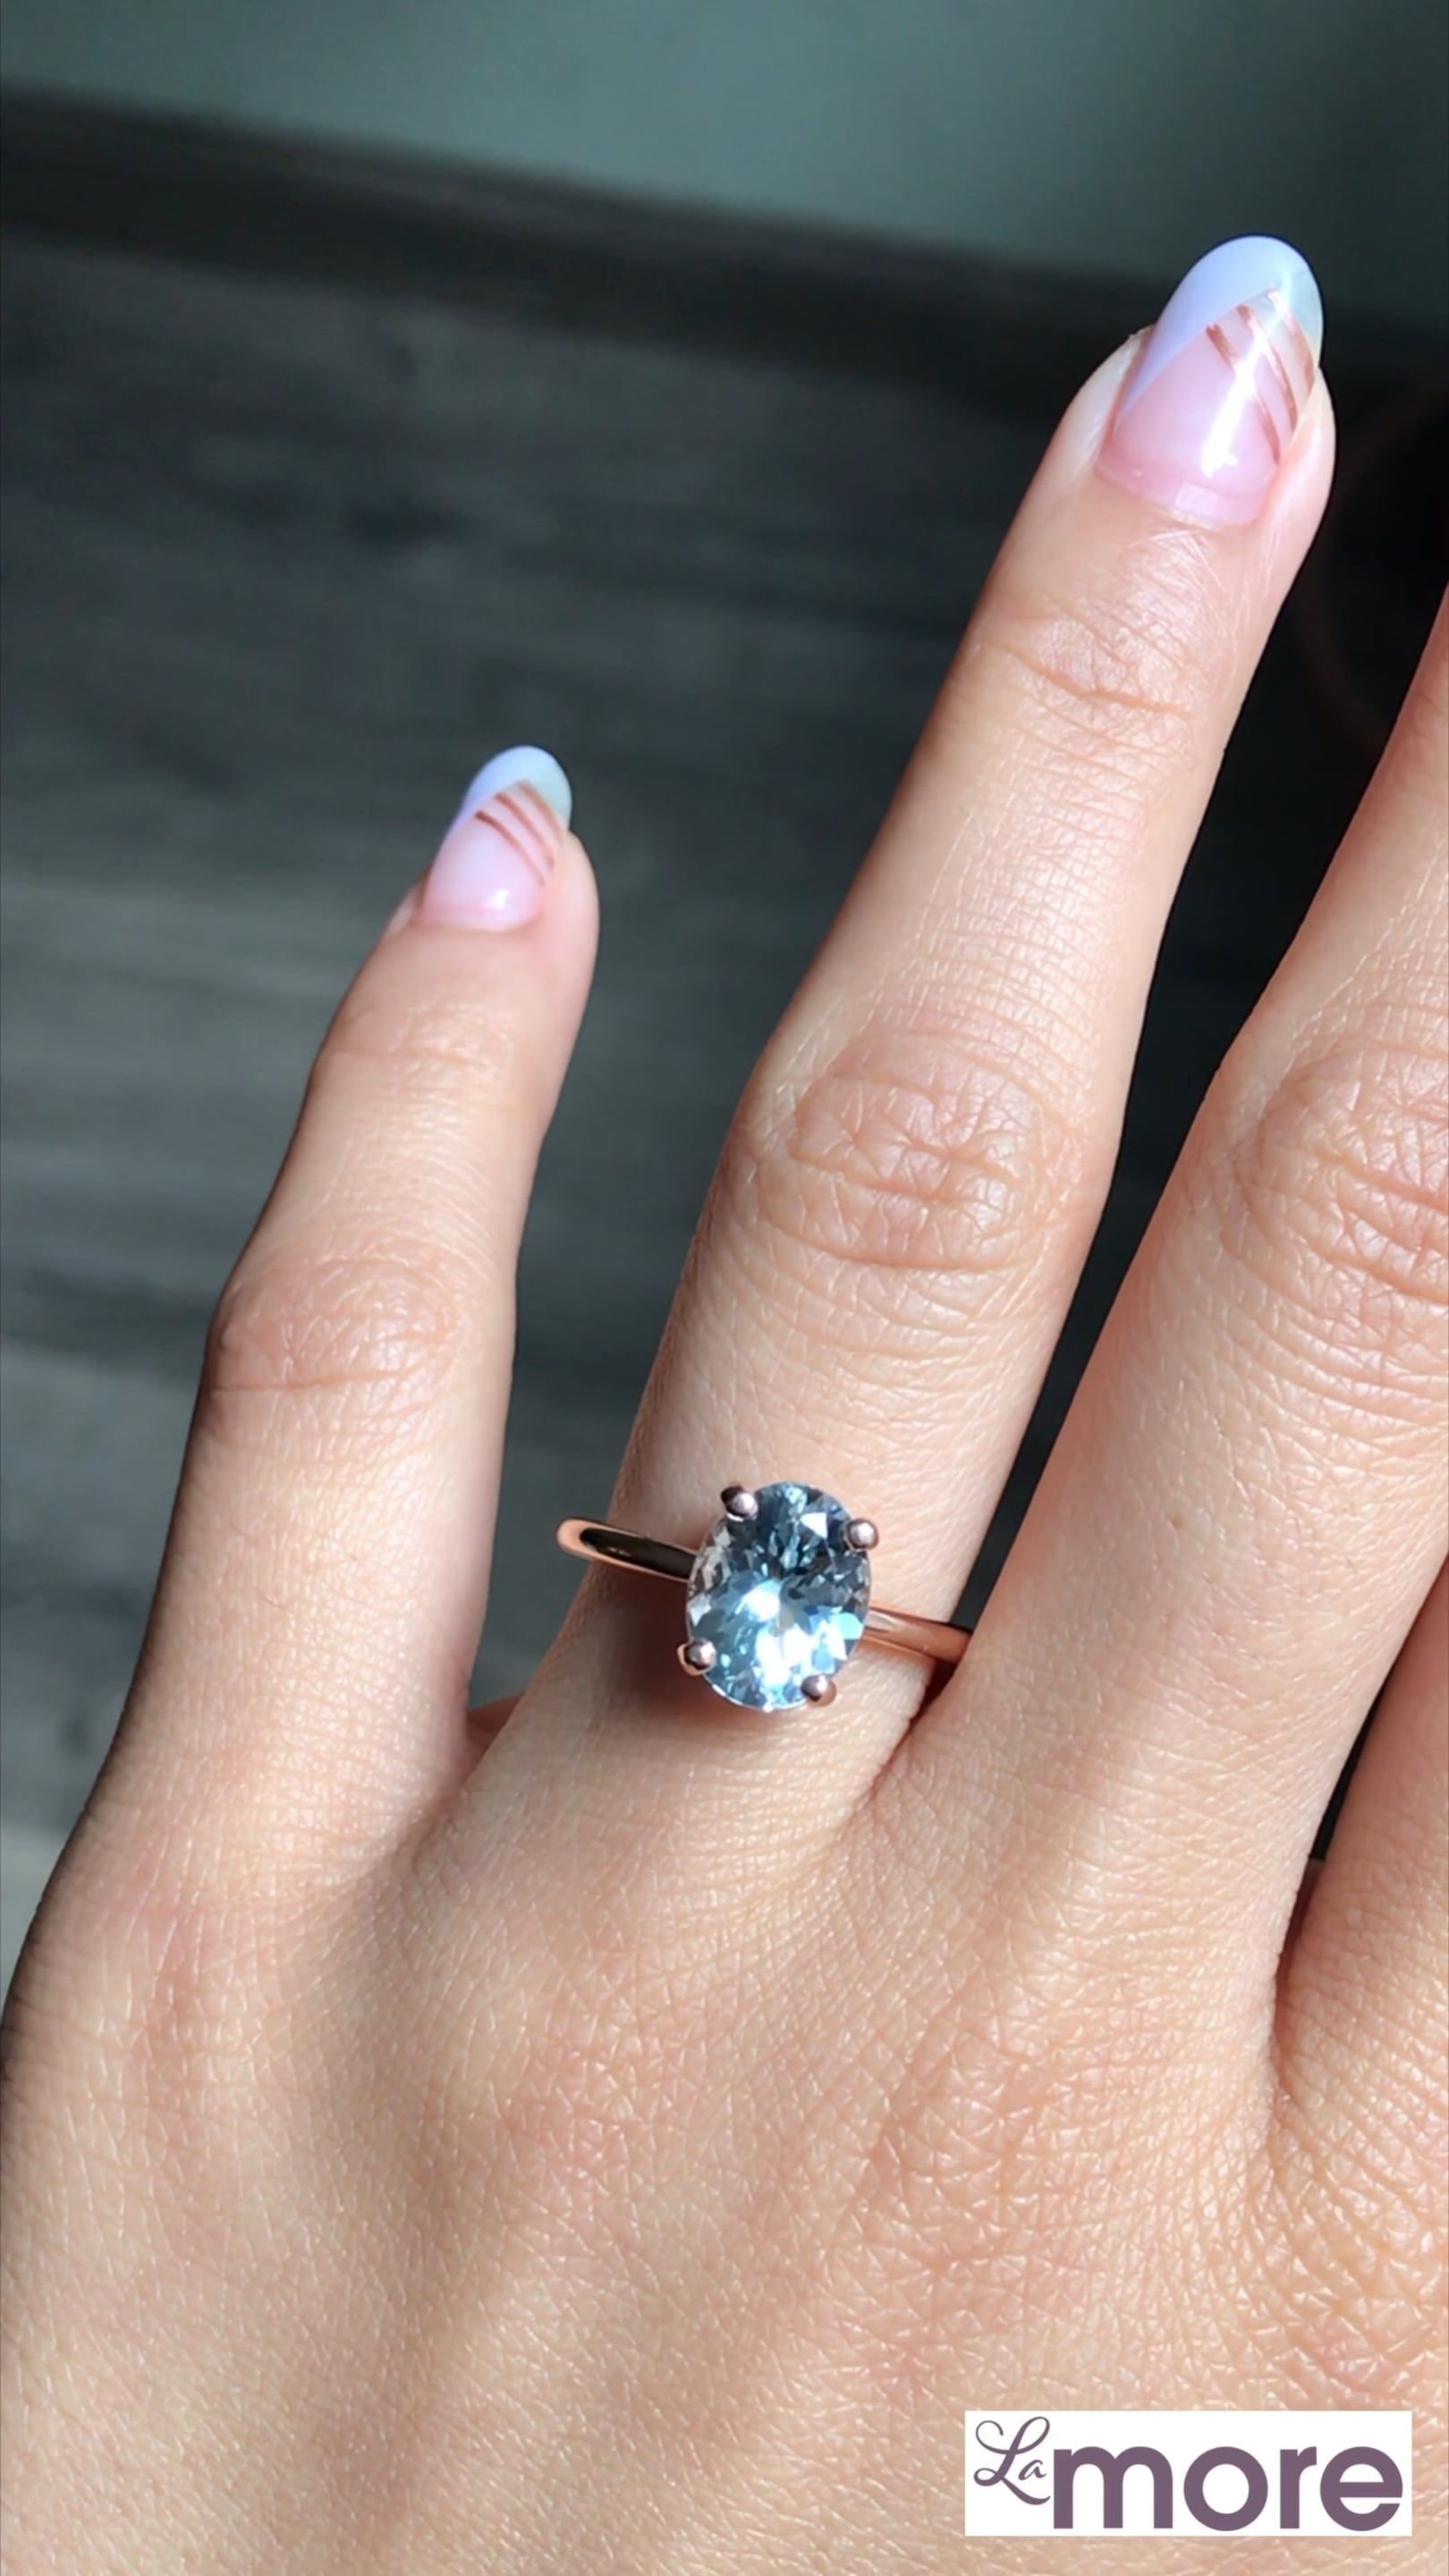 Oval Aquamarine Ring in 14k Rose Gold Low Profile Solitaire Ring, Size 6.75